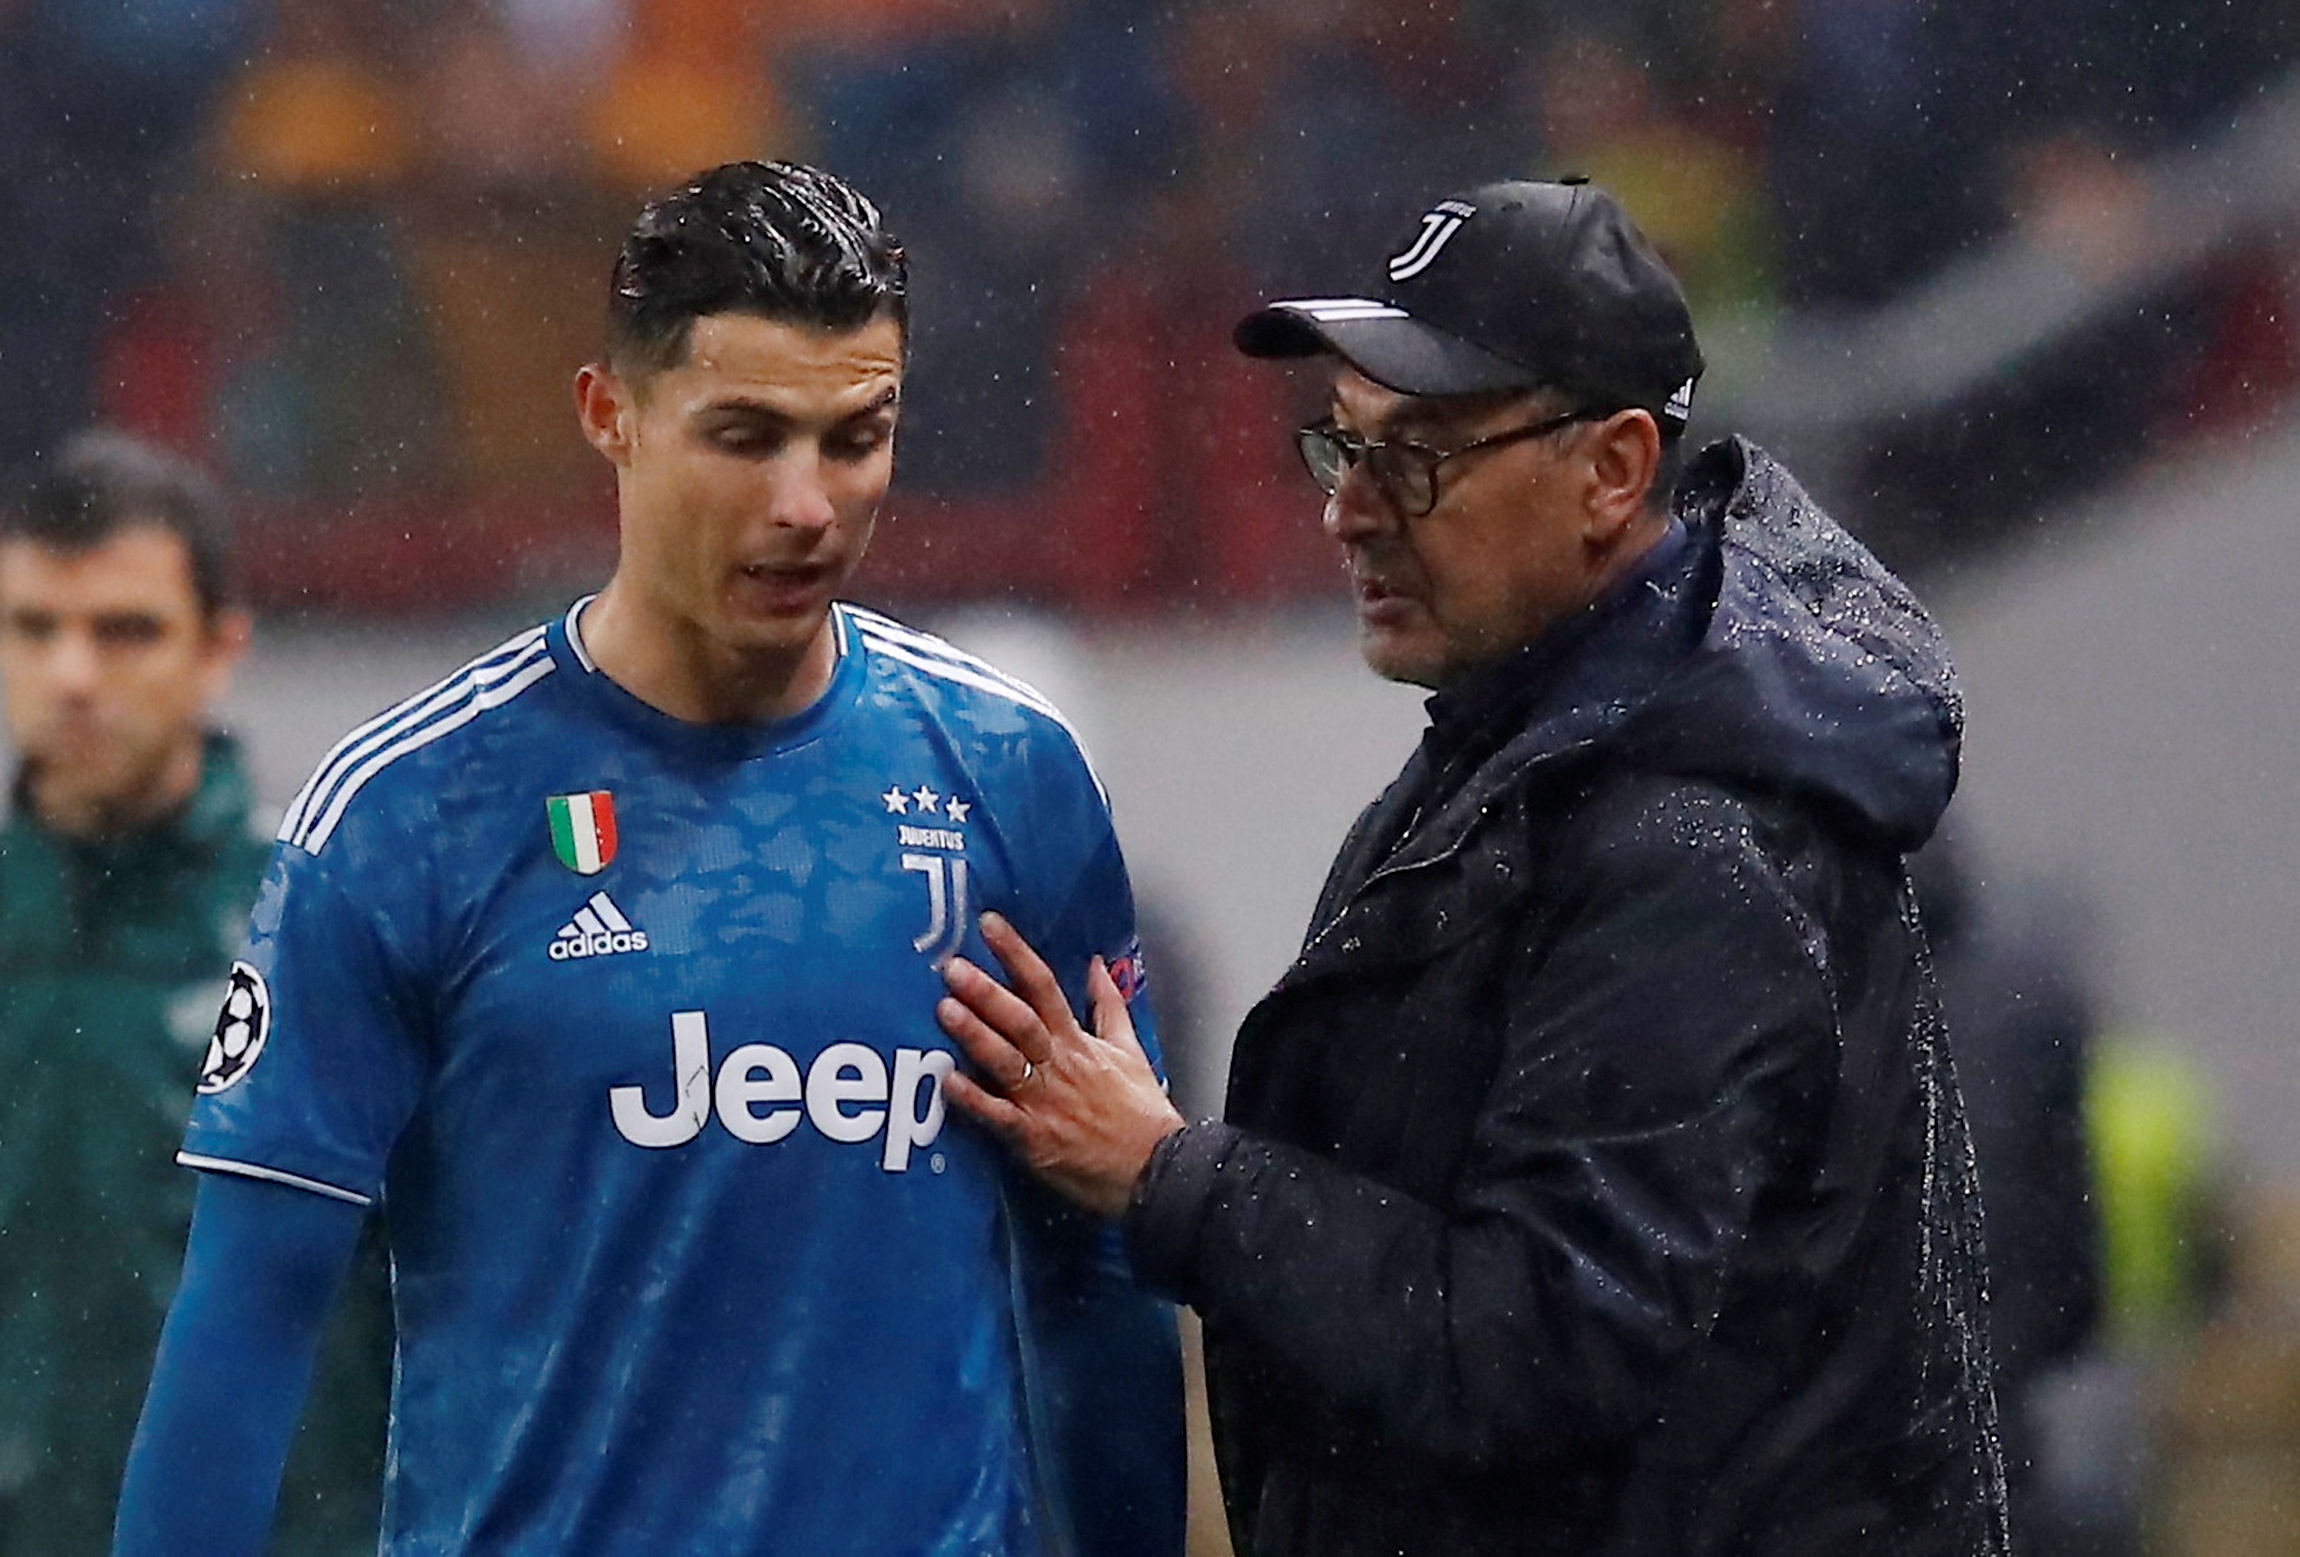 Frustrated Cristiano Ronaldo leaves stadium after substituted off against AC Milan